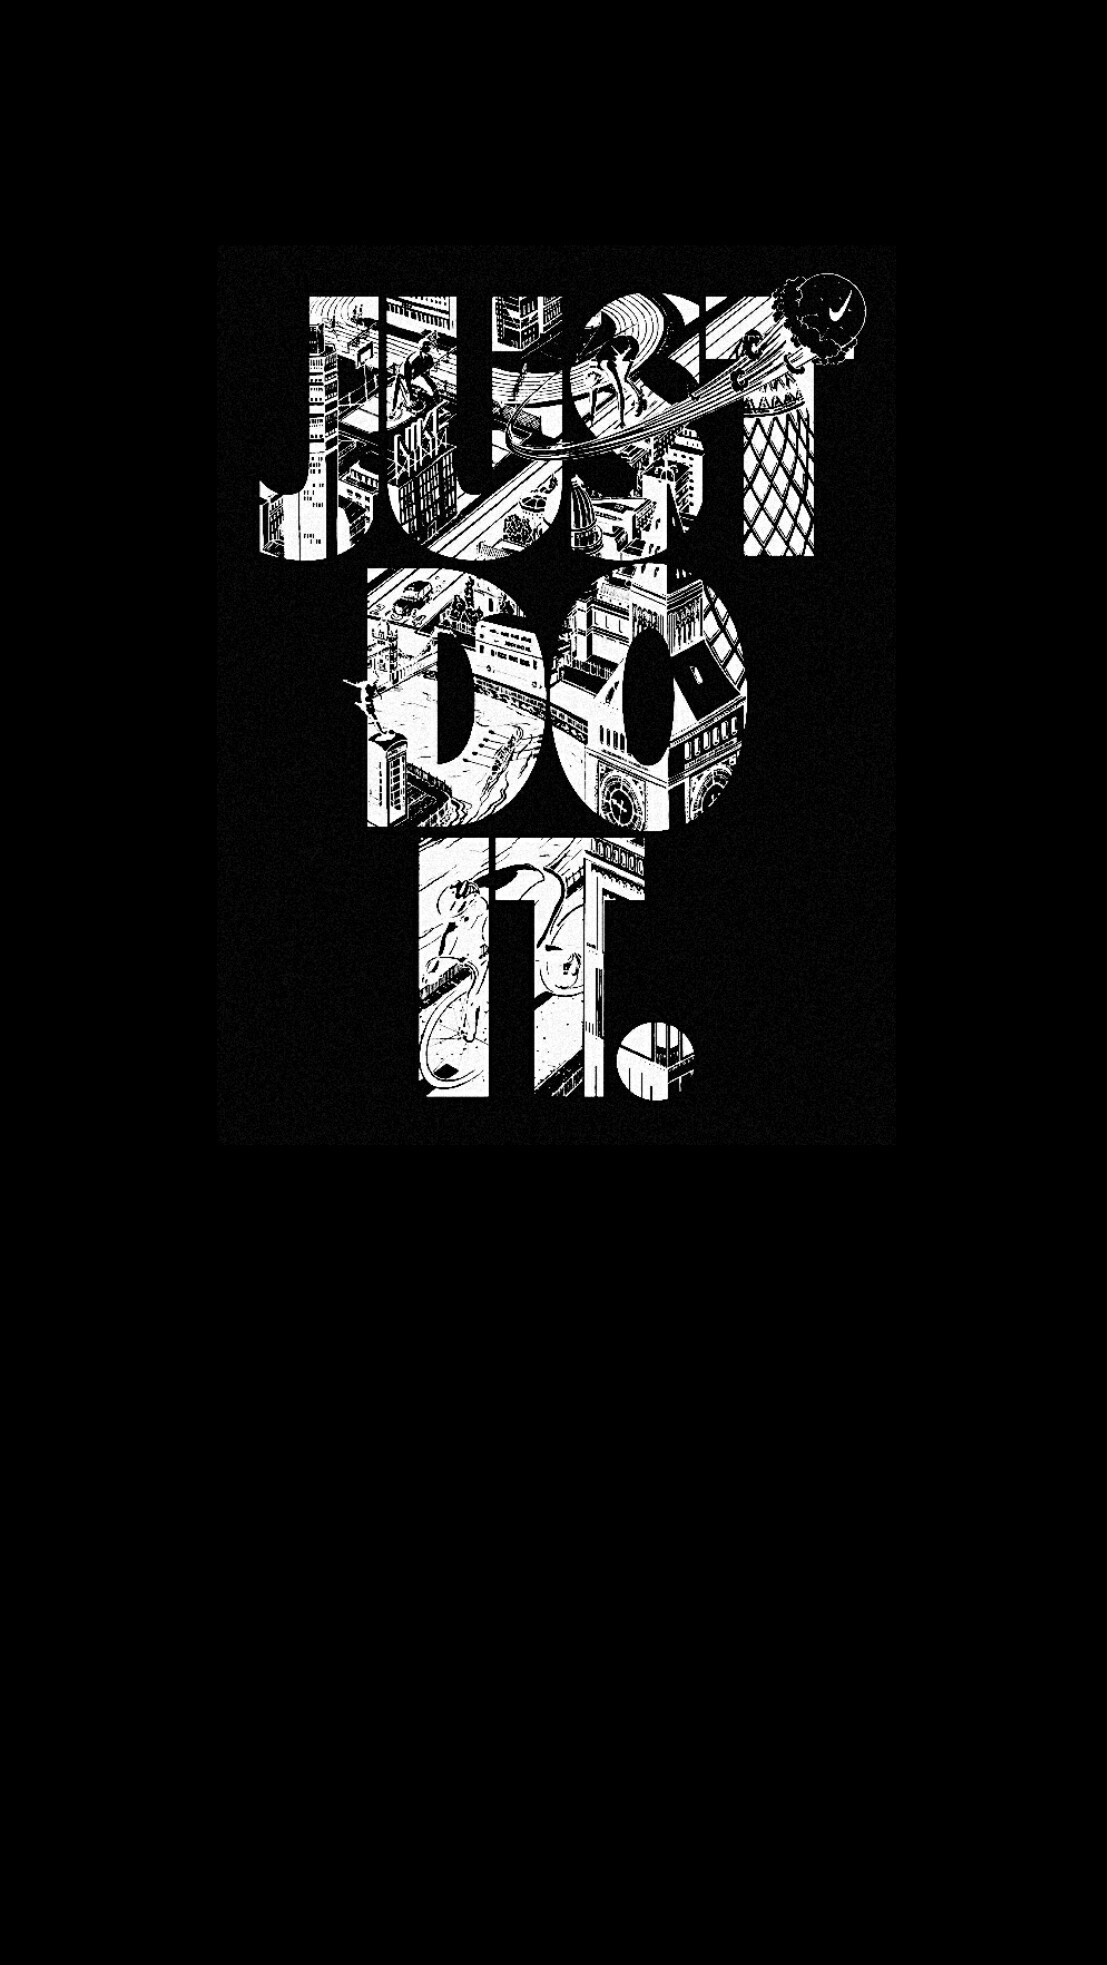 #nike #black #wallpaper #iPhone #android